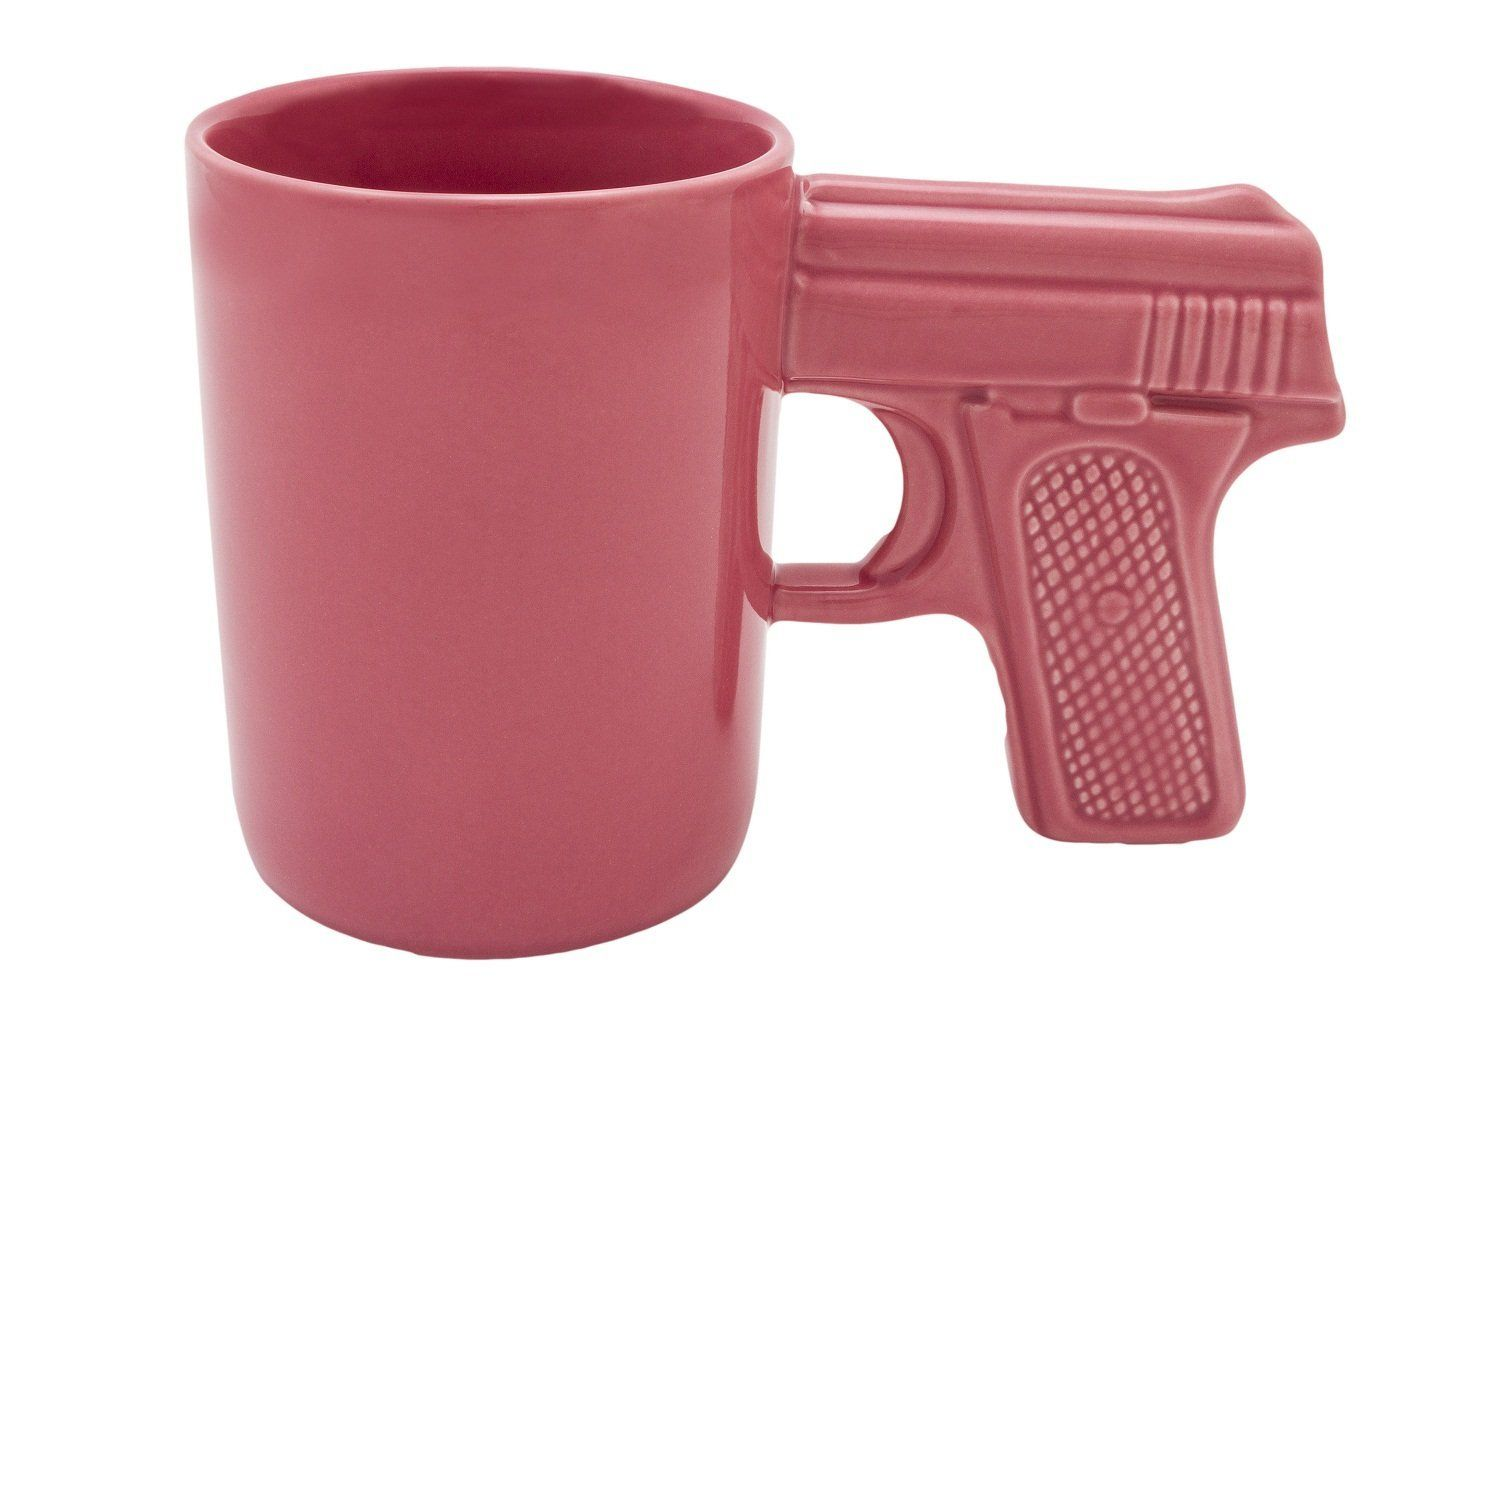 Ags Brands Gun Mugs 2 Pack Remarkable Outdoor Item Available